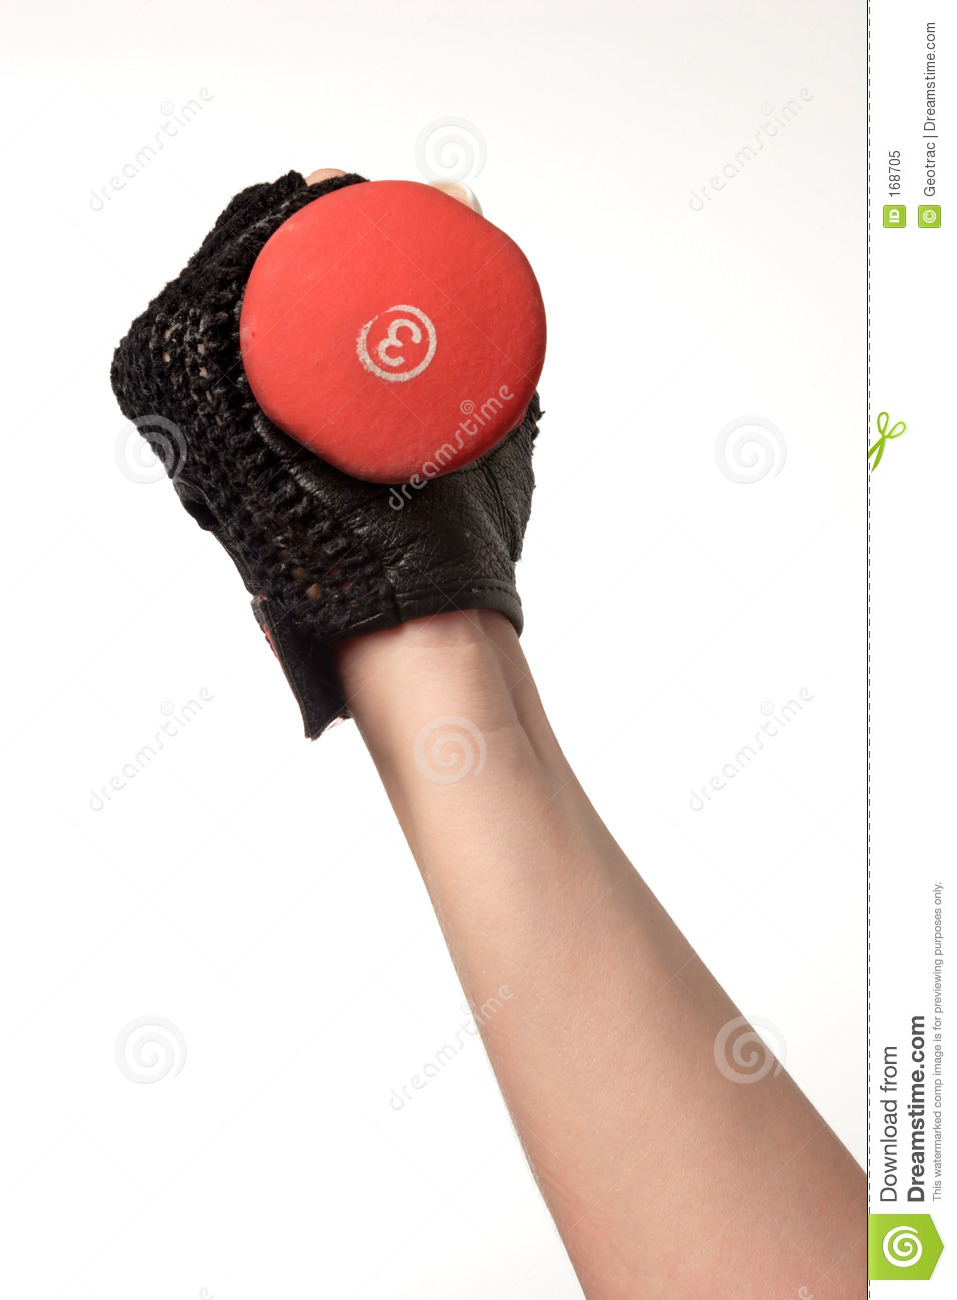 Arm holding a three pound weight